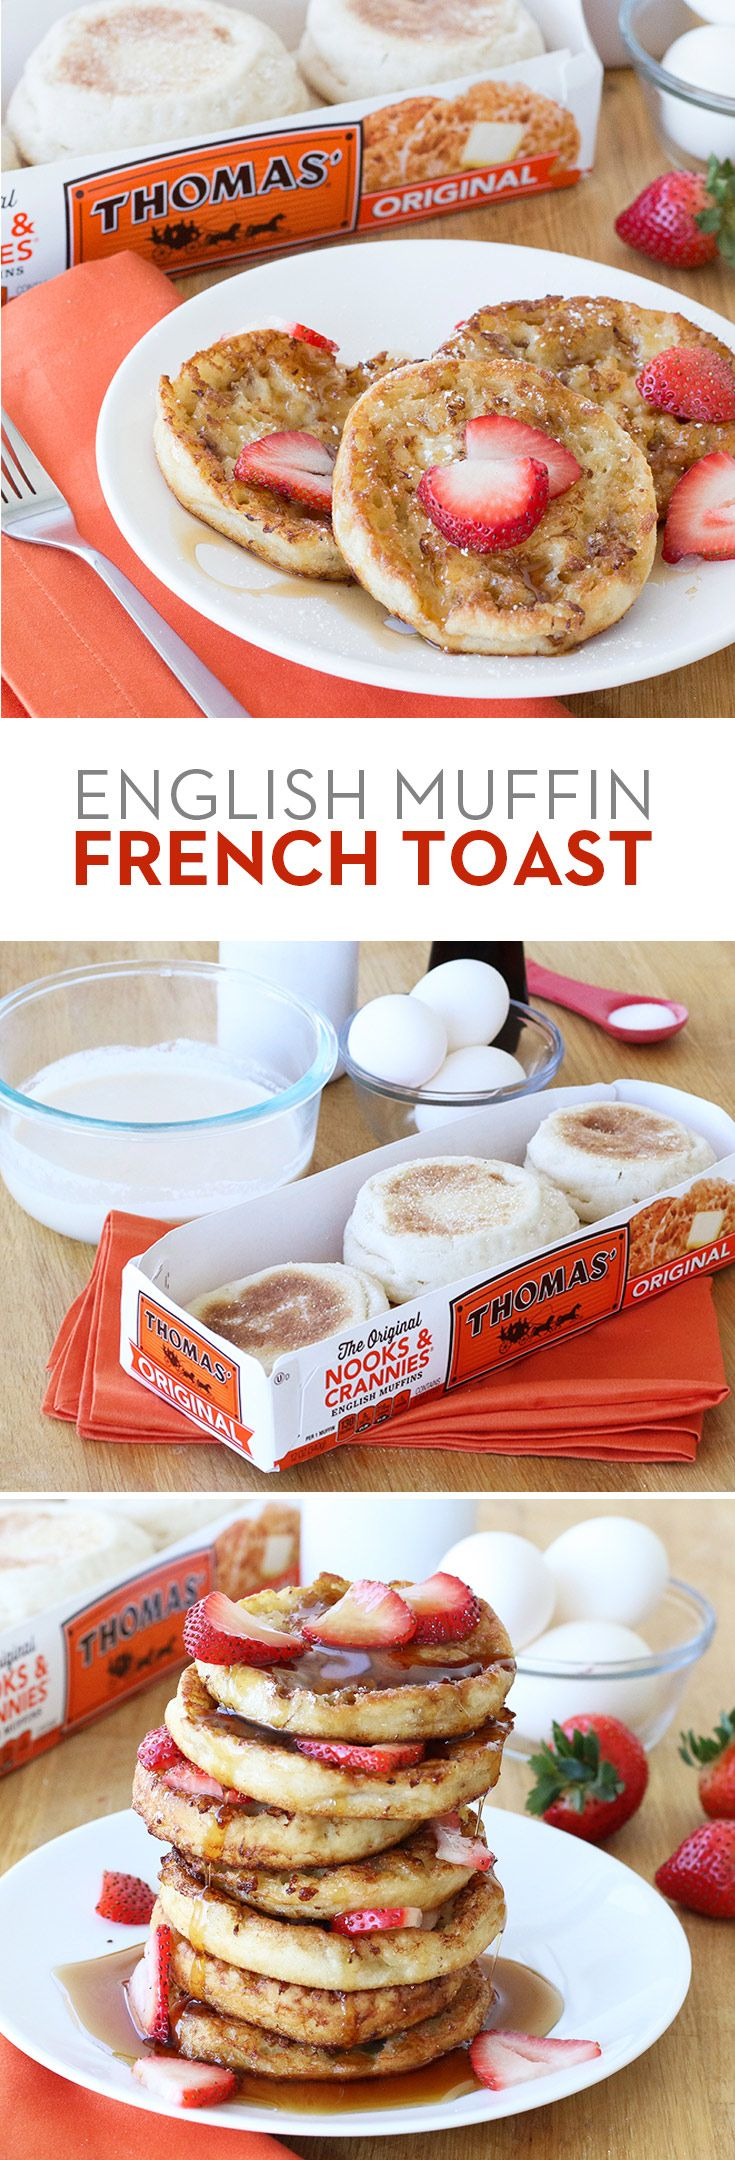 English Muffin French Toast: You Haven't Had French Toast Until You've